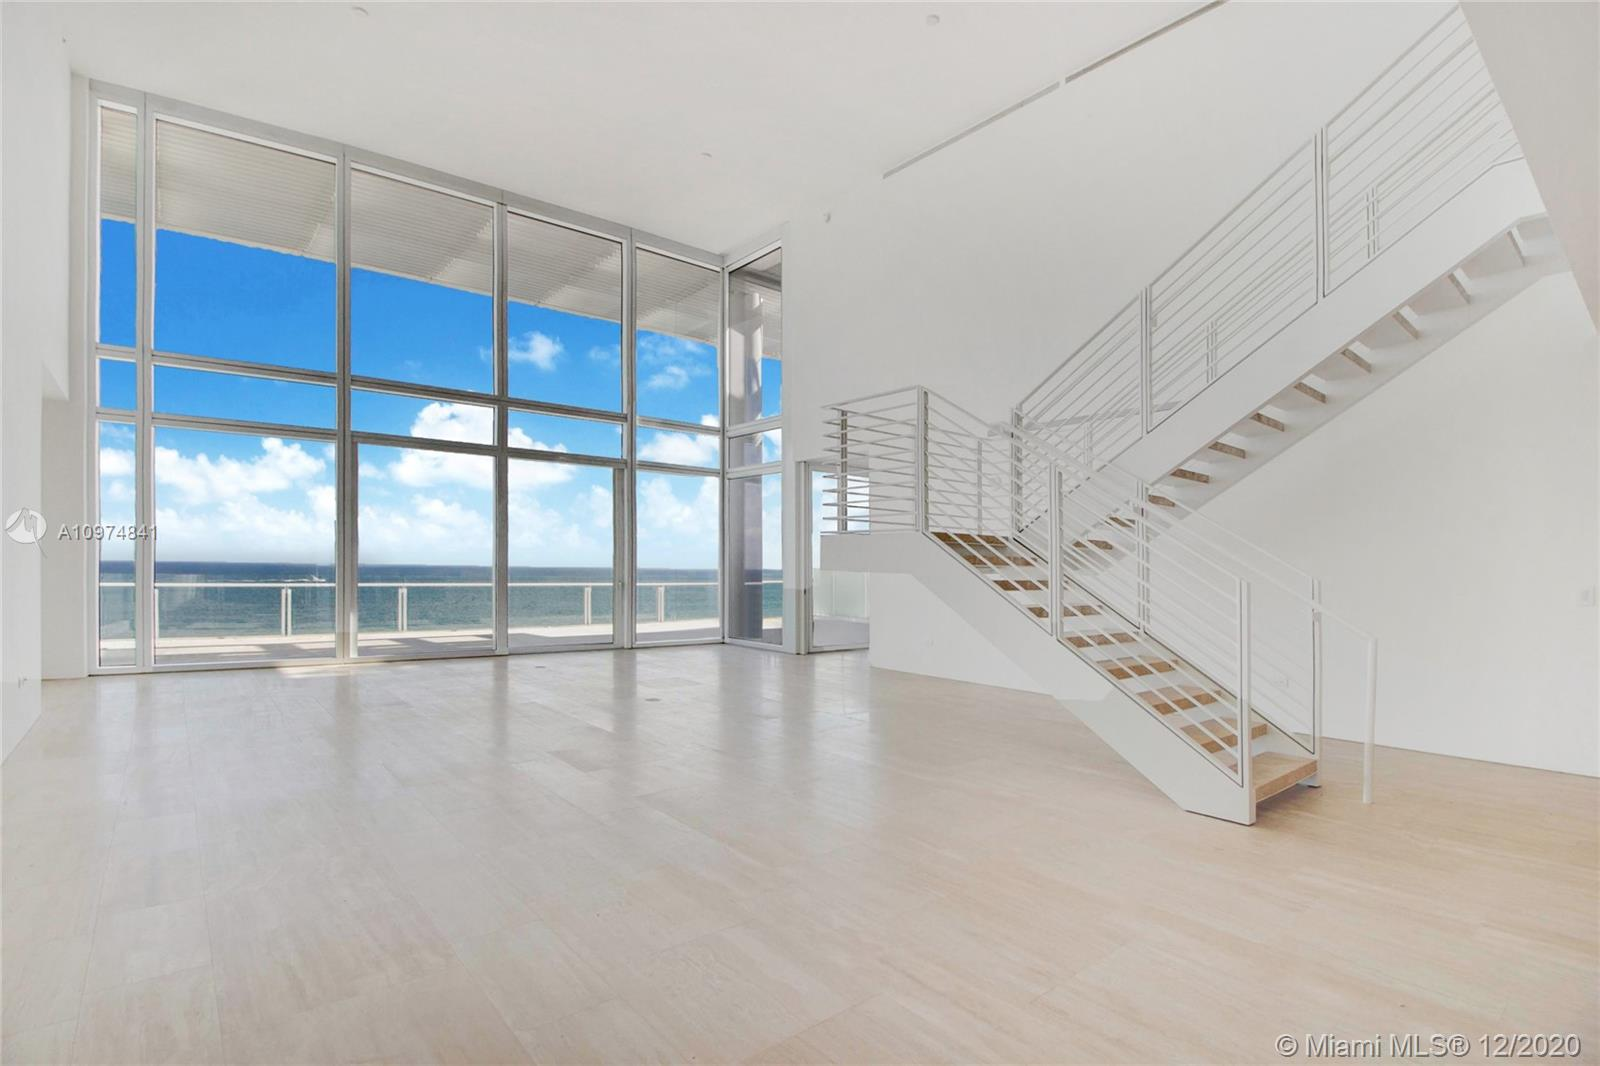 view from within S-PH2 Penthouse condo with large open white room with stunning view of Miami beach